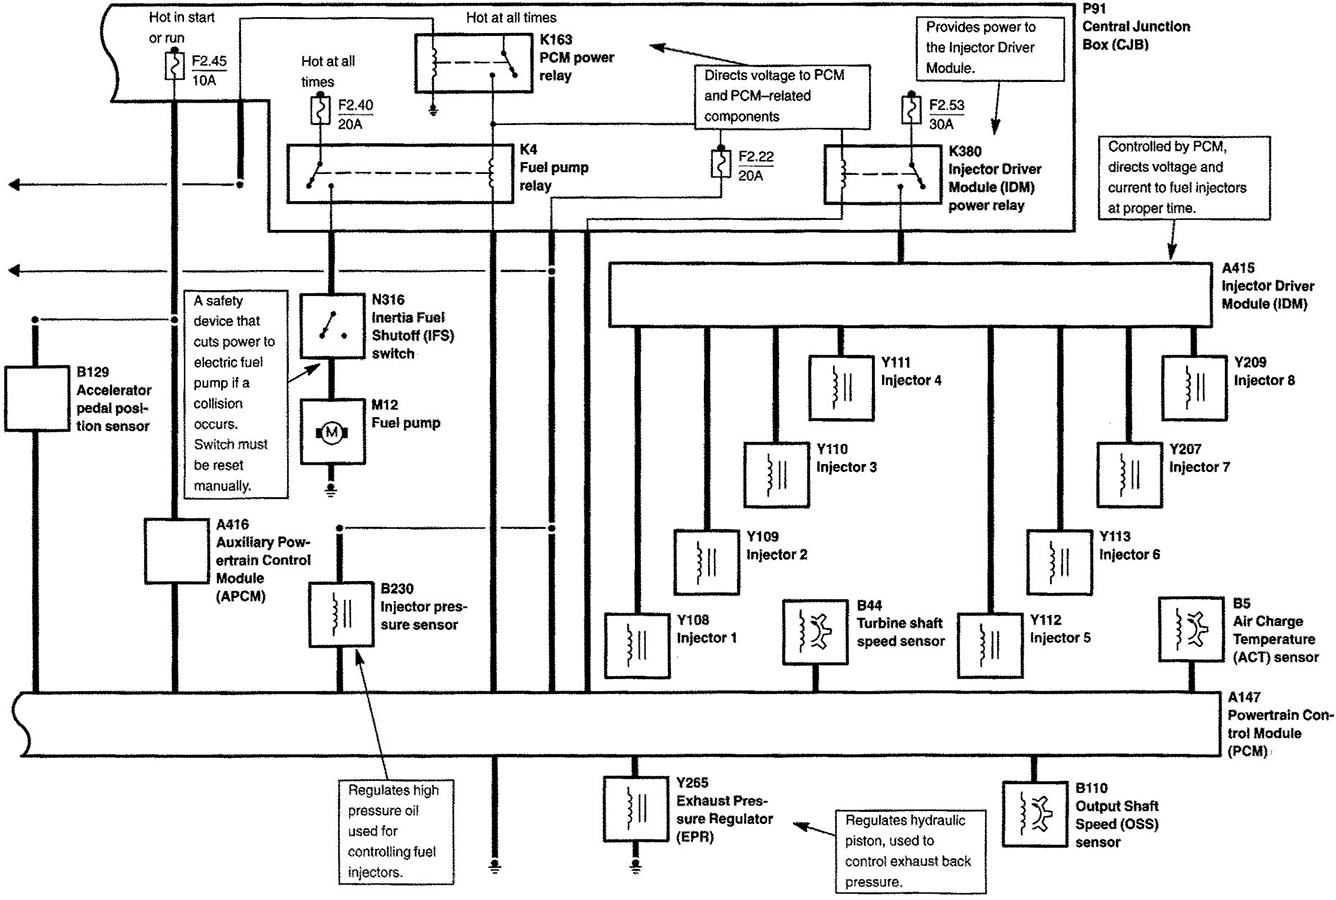 2012 05 30_222627_f250o103a1 f450 wiring diagram trailer wiring diagram \u2022 wiring diagrams j International DT466 Injector Wiring at readyjetset.co